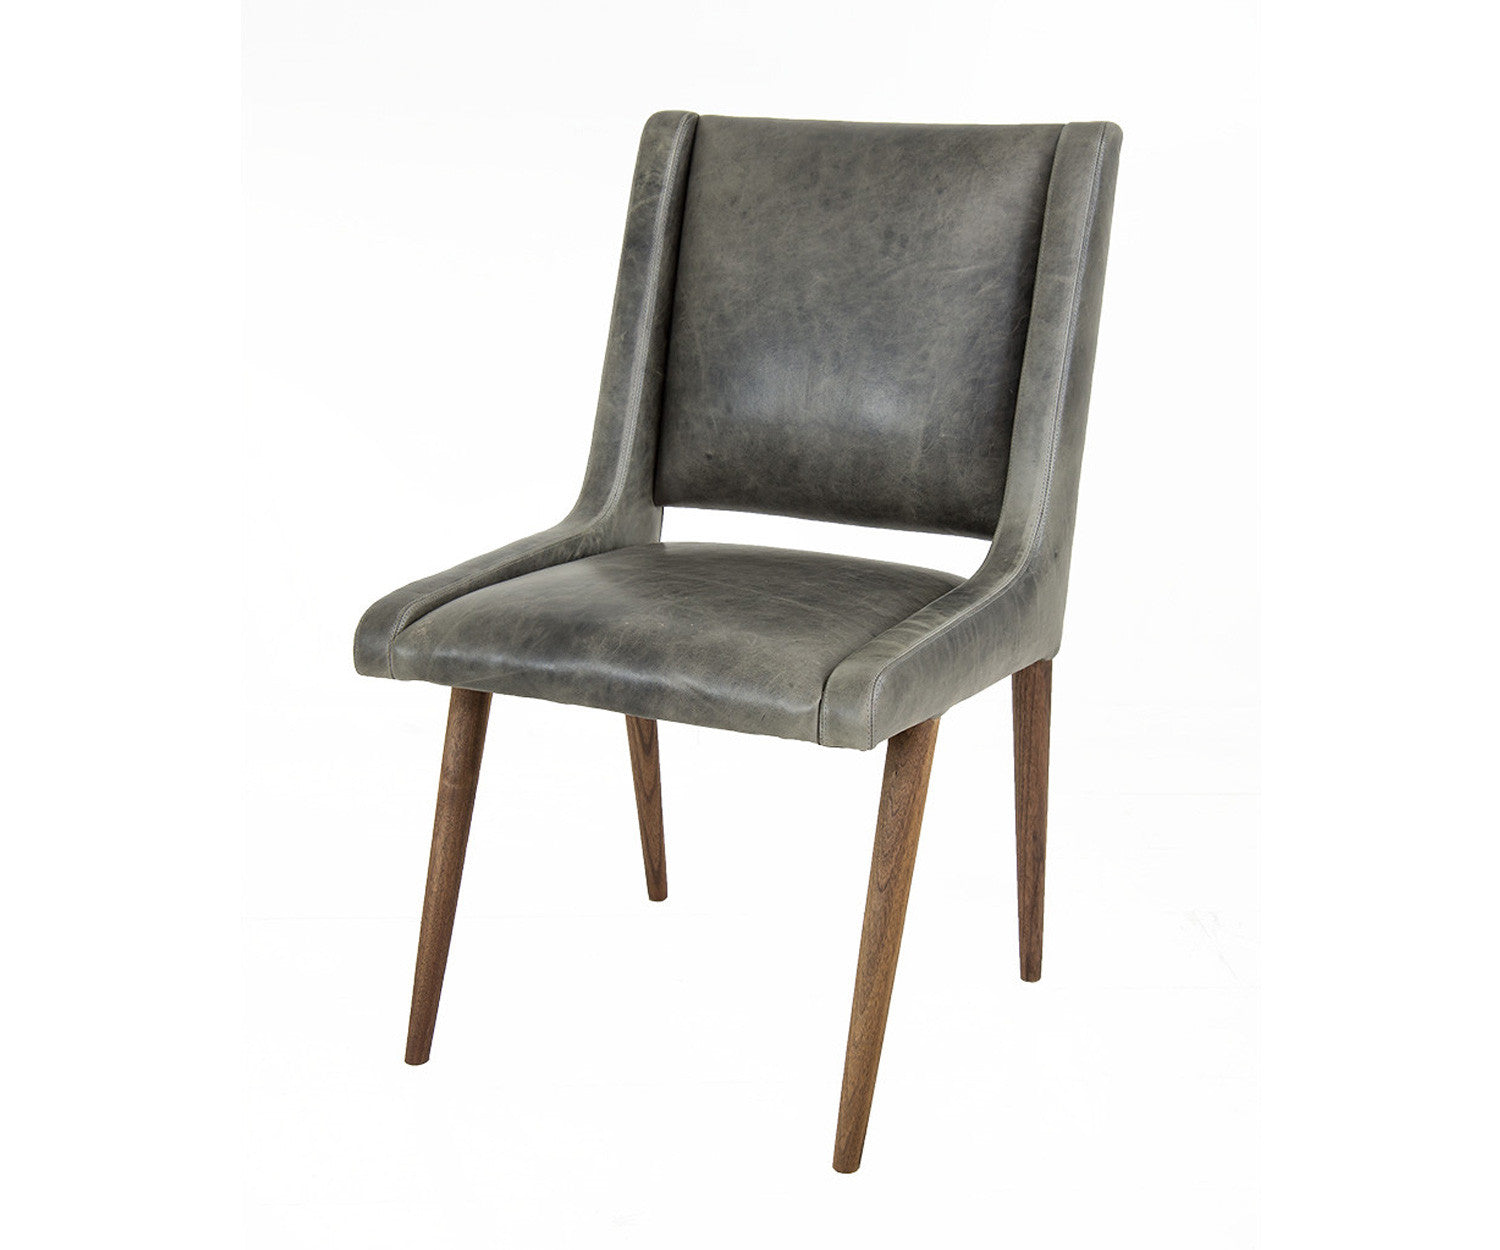 Enjoyable Mid Century Dining Chair In Distressed Grey Leather Gmtry Best Dining Table And Chair Ideas Images Gmtryco